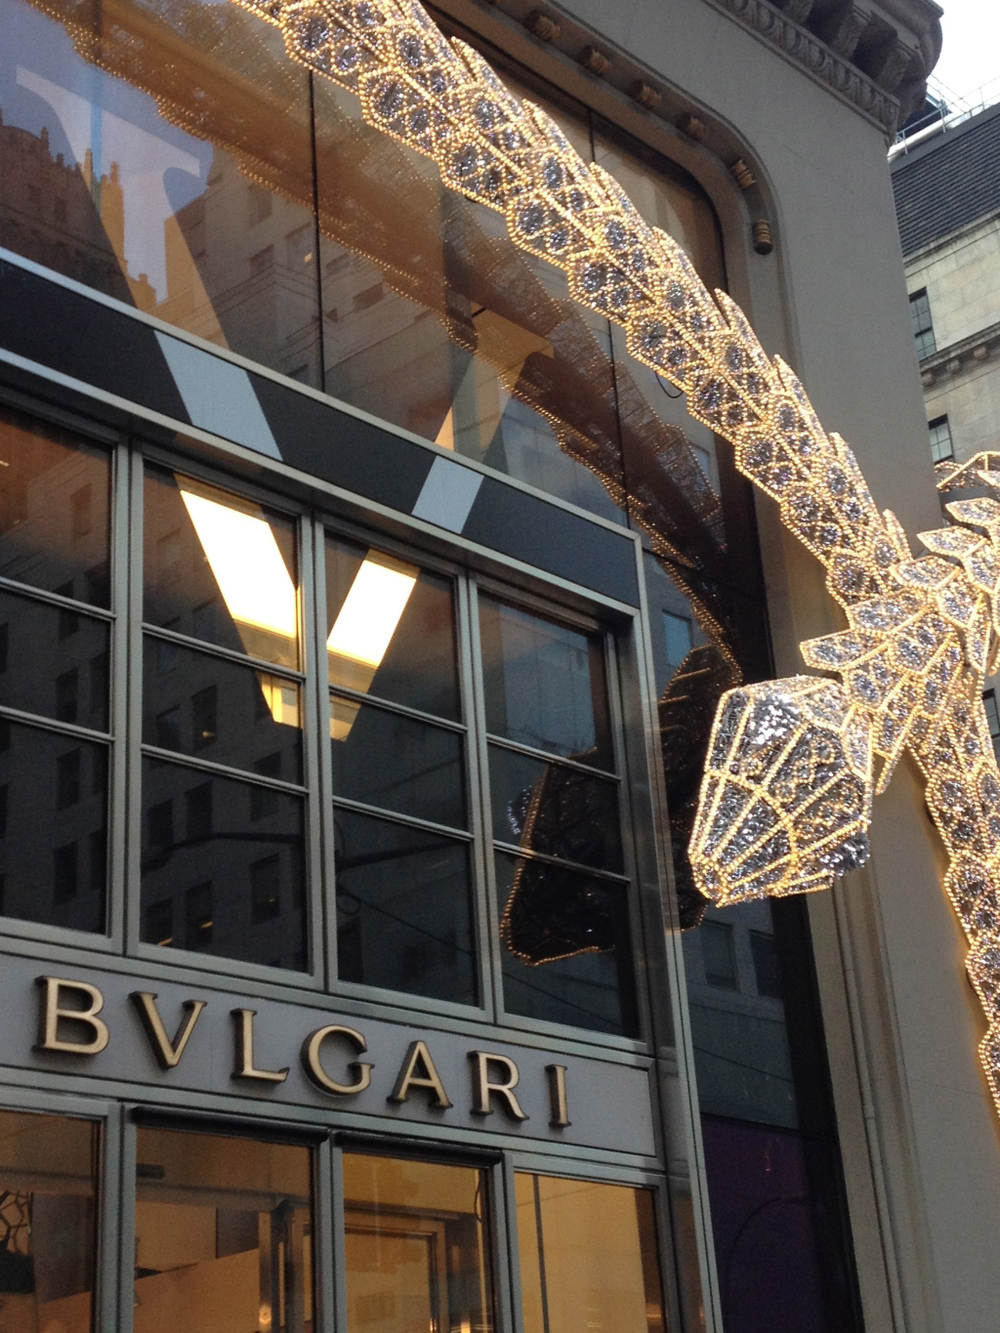 Now that's how I like my snakes…Bulgari store front, NYC.